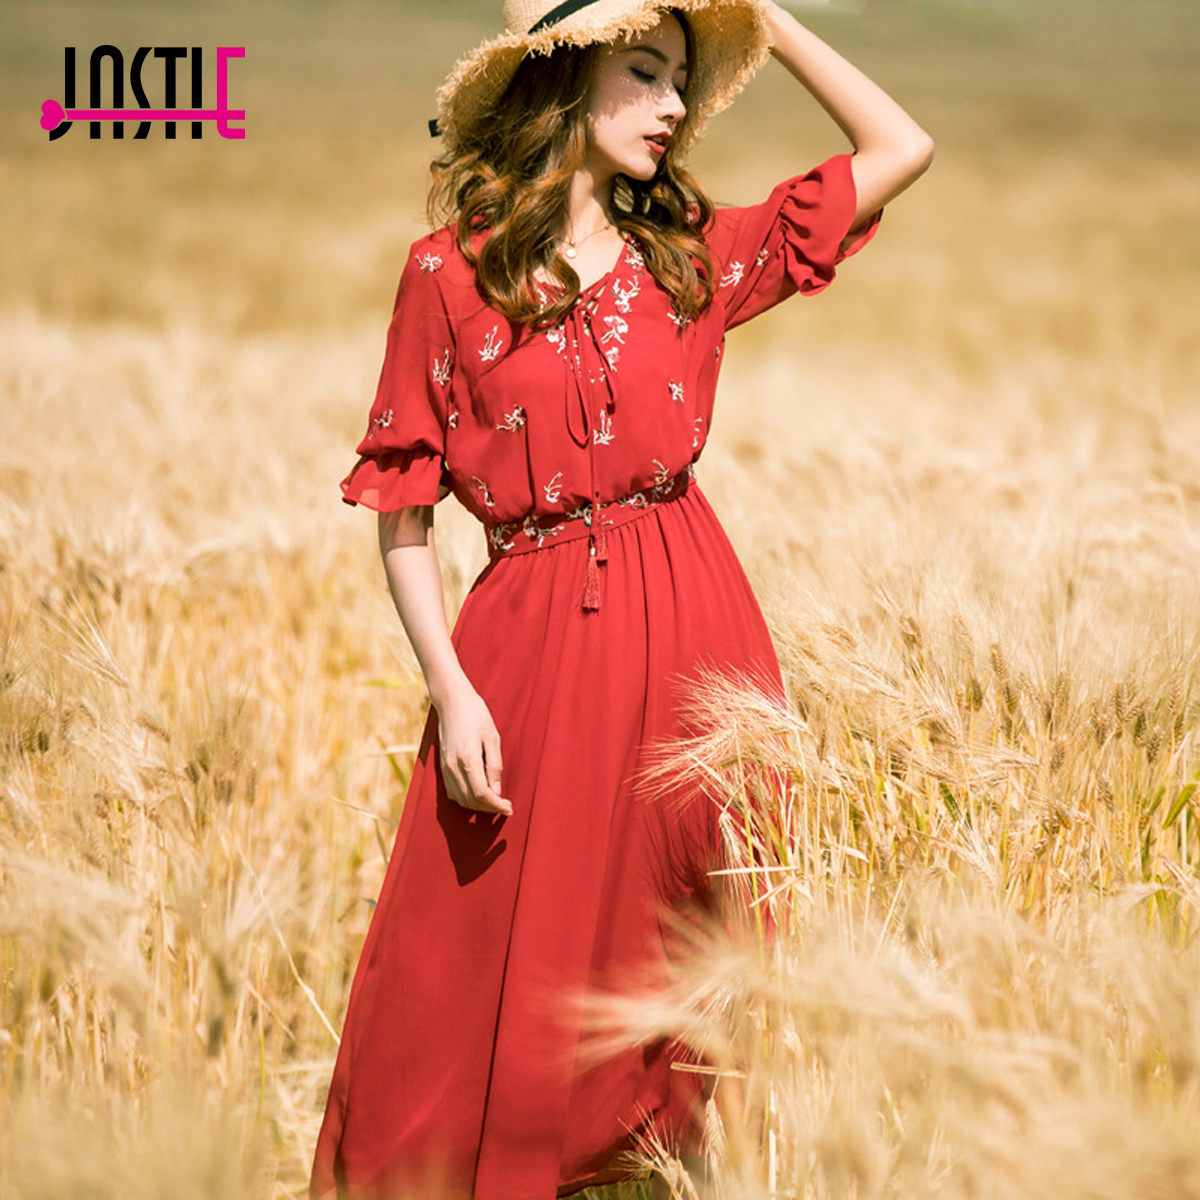 Jastie Red Lace up V-Neck Women Dress Summer 2018 New Chiffon Dresses Embroidery Retro Holiday Dress Boho Midi Female Vestidos женское платье brand new 2015 v midi vestidos dress